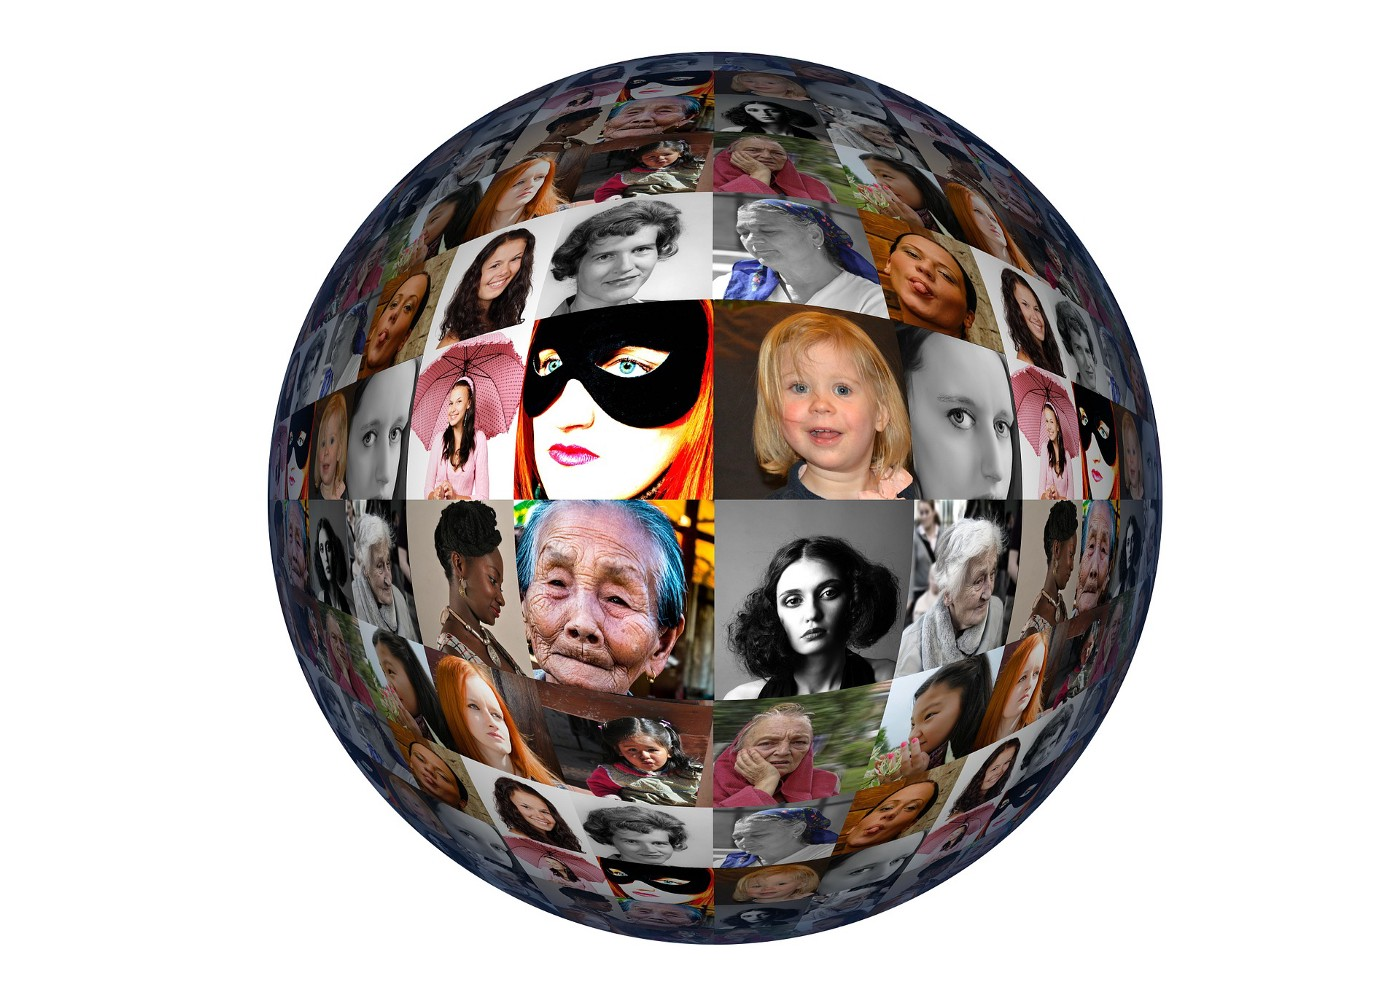 A sphere shape with pictures of women.